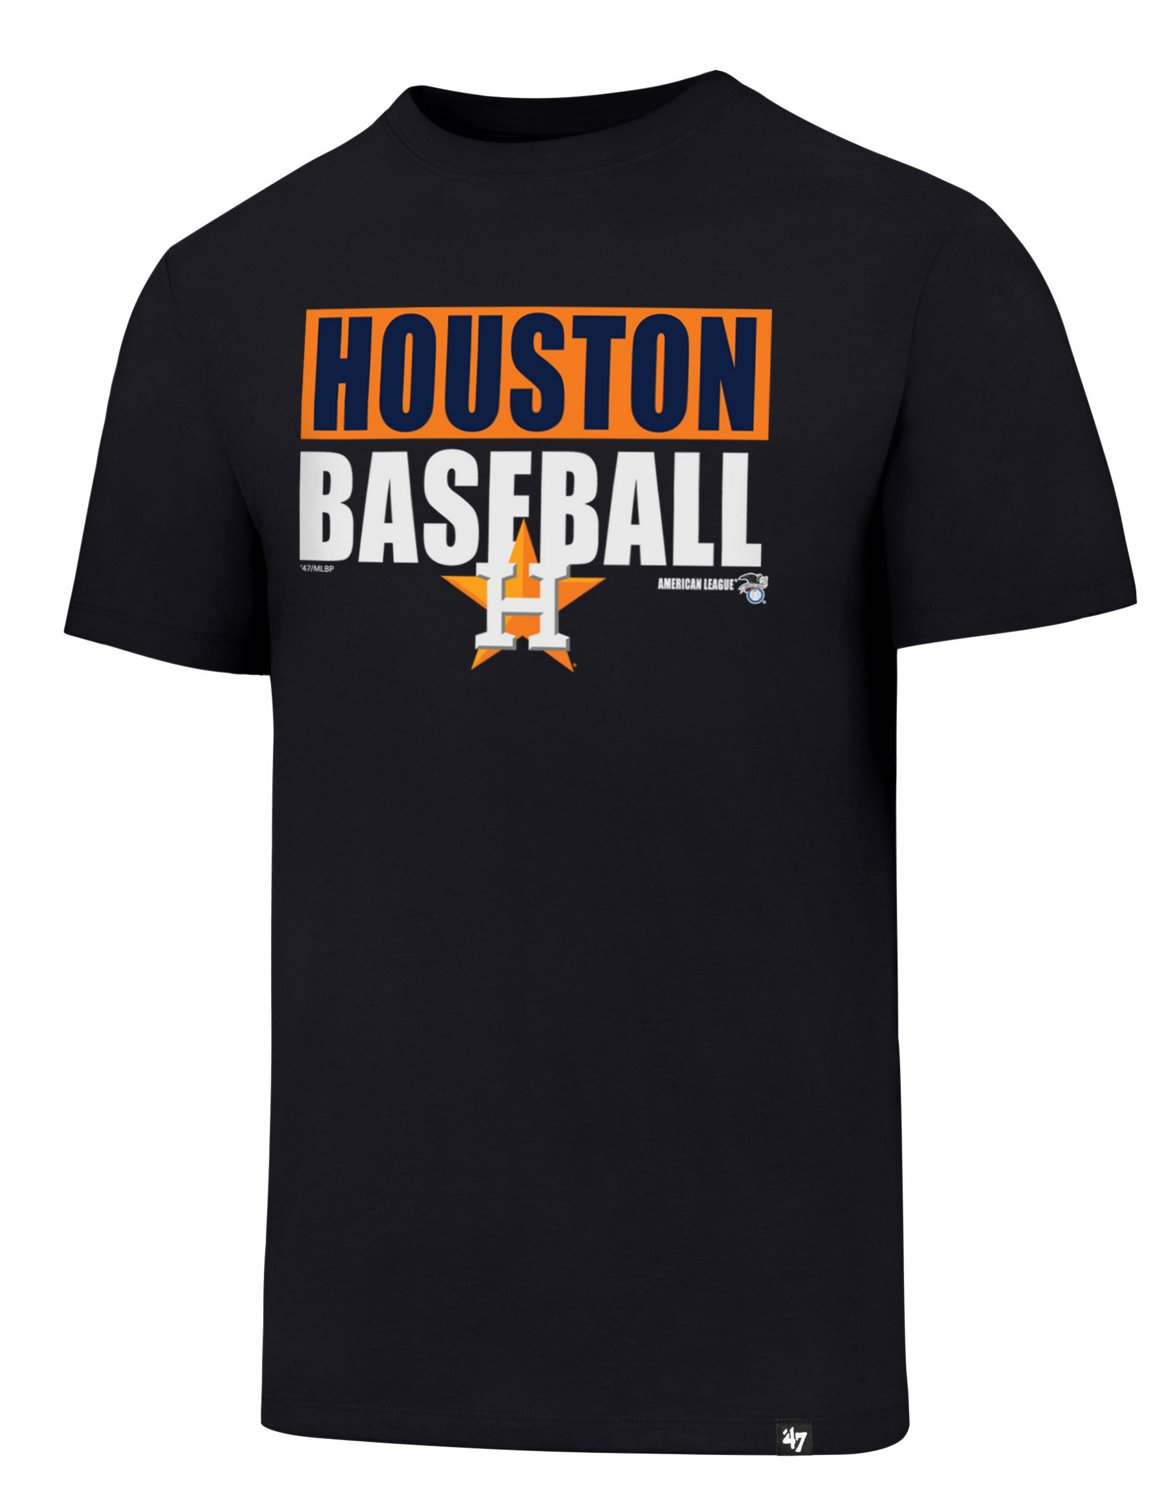 701b9fcd Display product reviews for '47 Houston Astros Baseball Club T-shirt